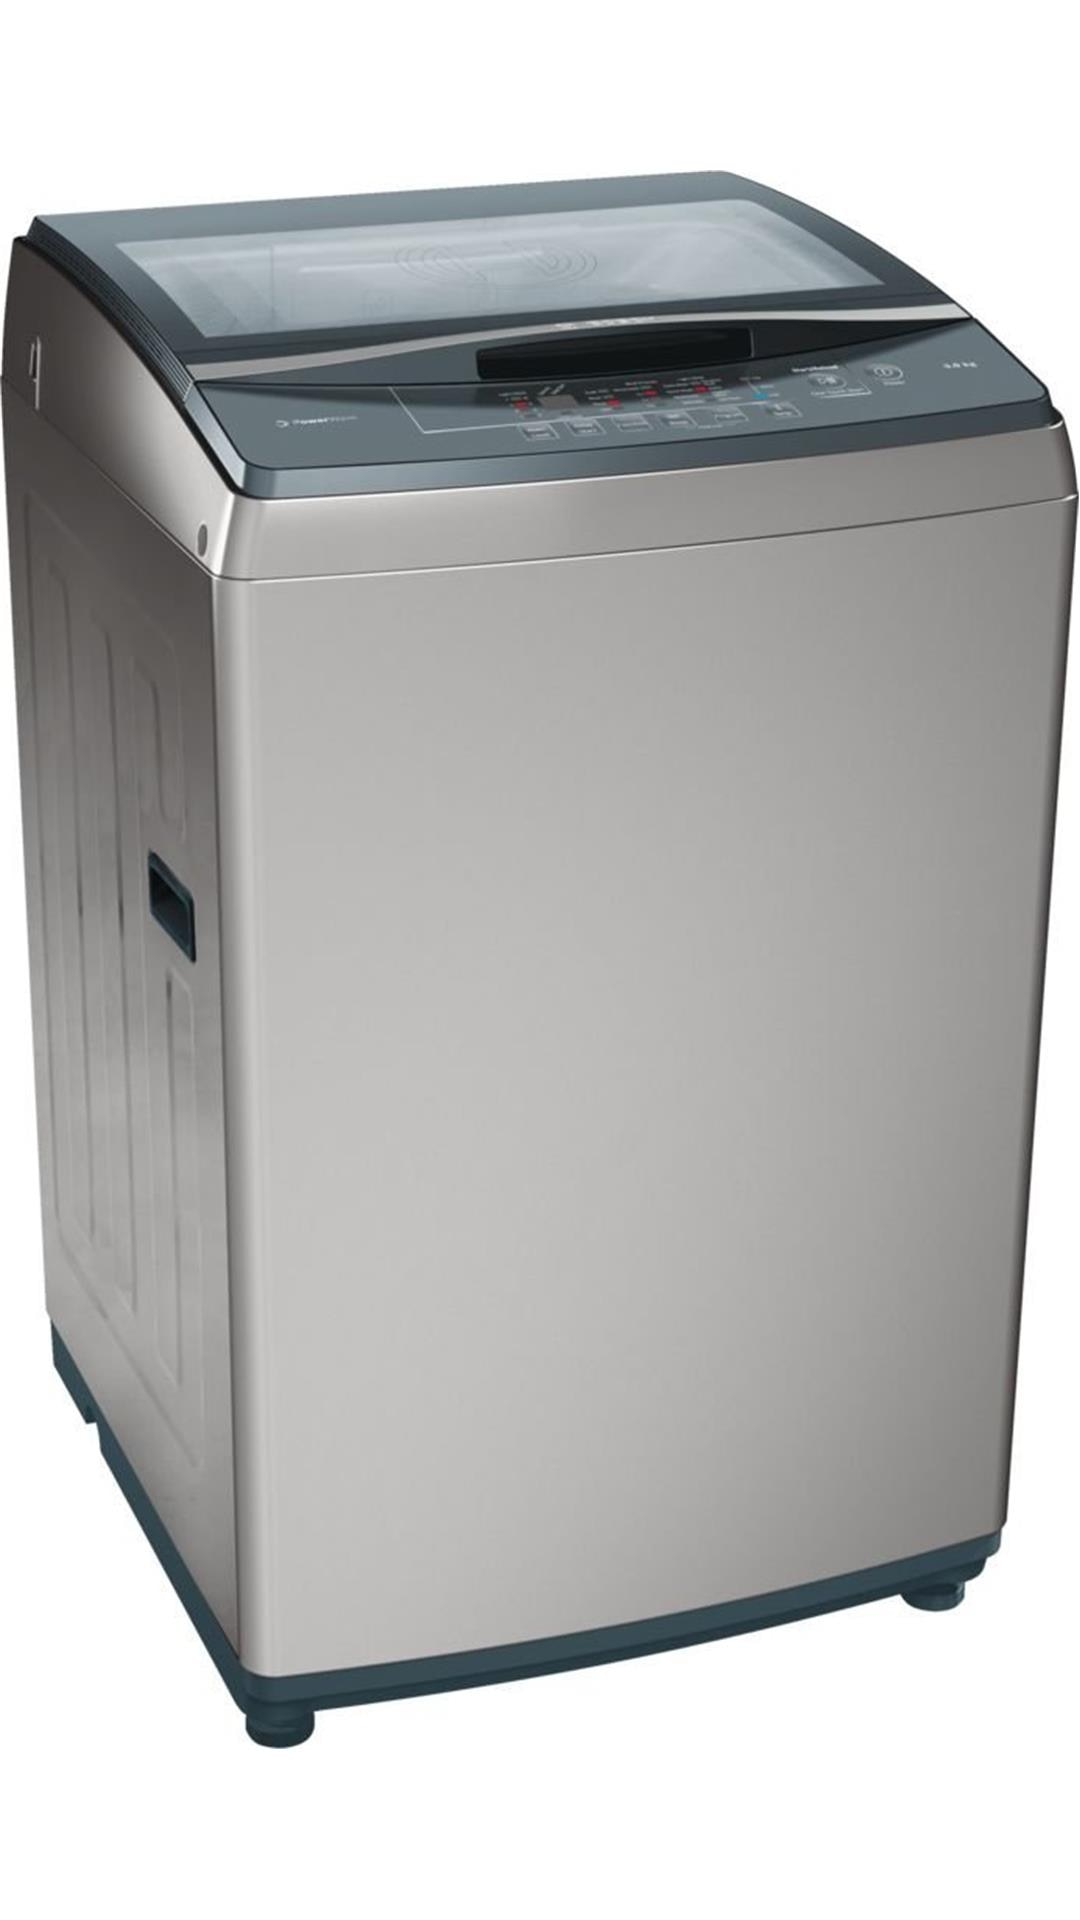 BOSCH WOE704WOIN 7KG Fully Automatic Top Load Washing Machine